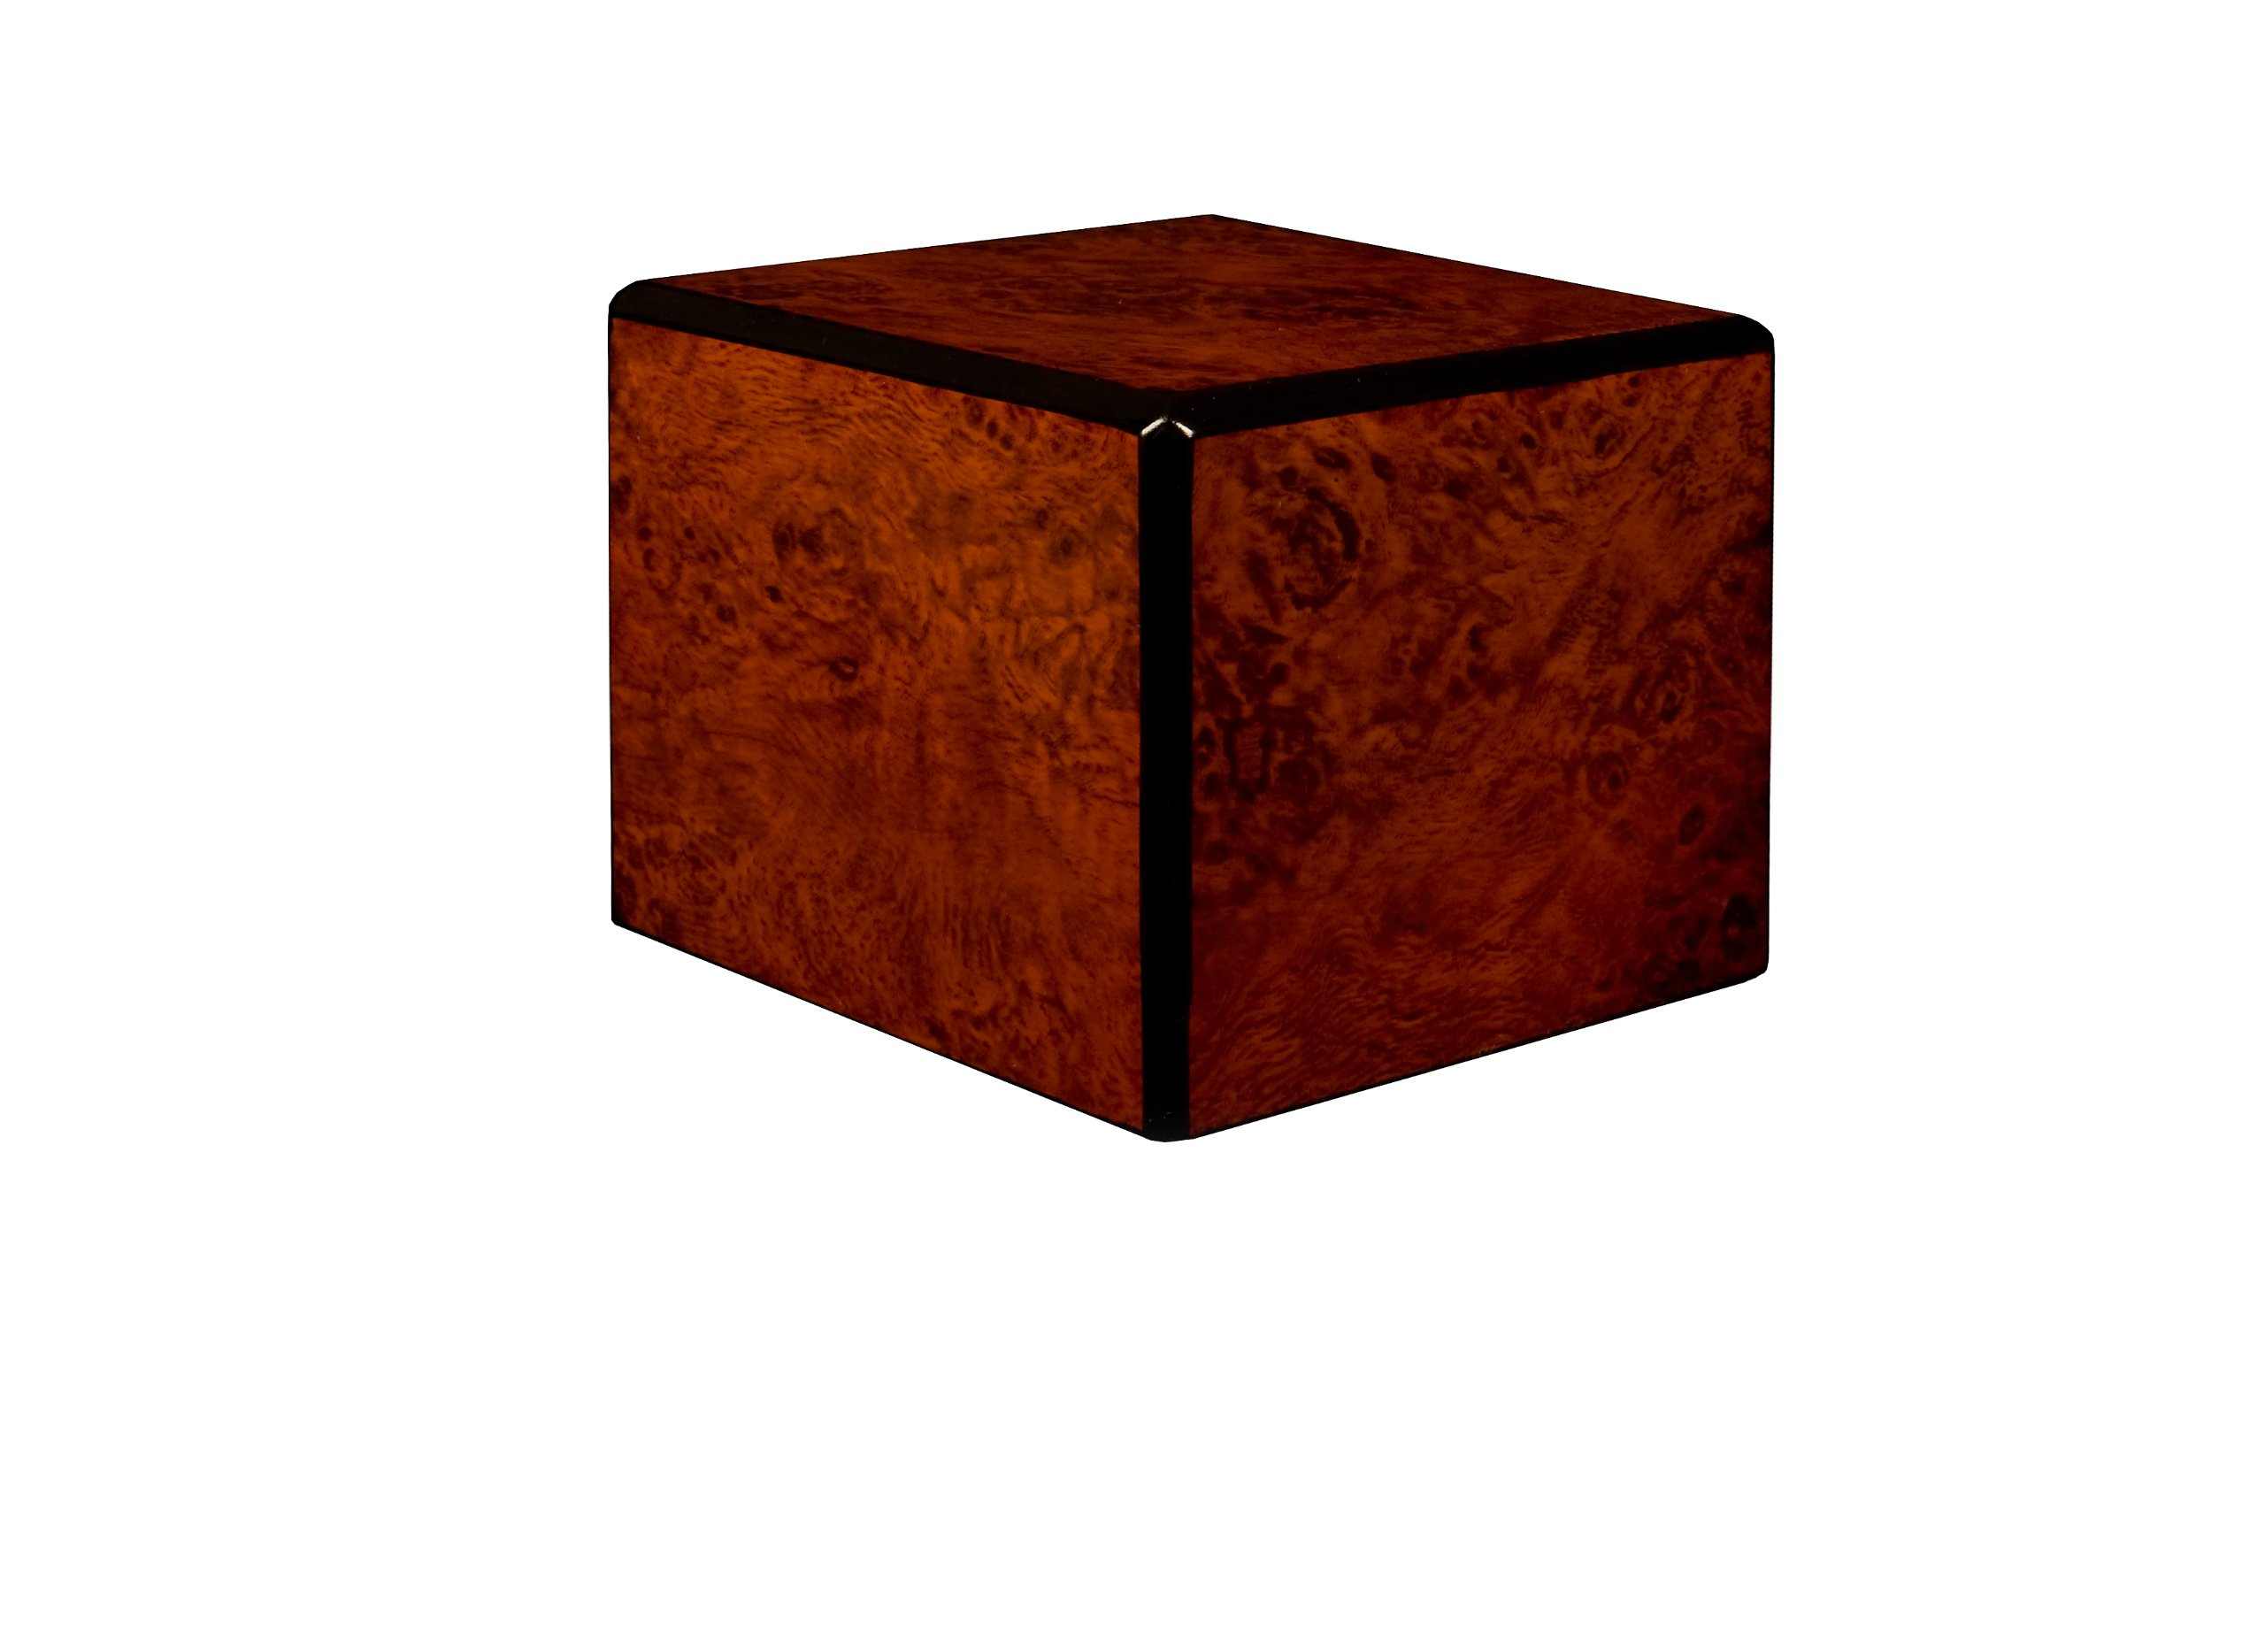 Chateau Urns Society Collection, Wood Urn, Pet Urn, Extra Small cremation Urn, Burl wood finish